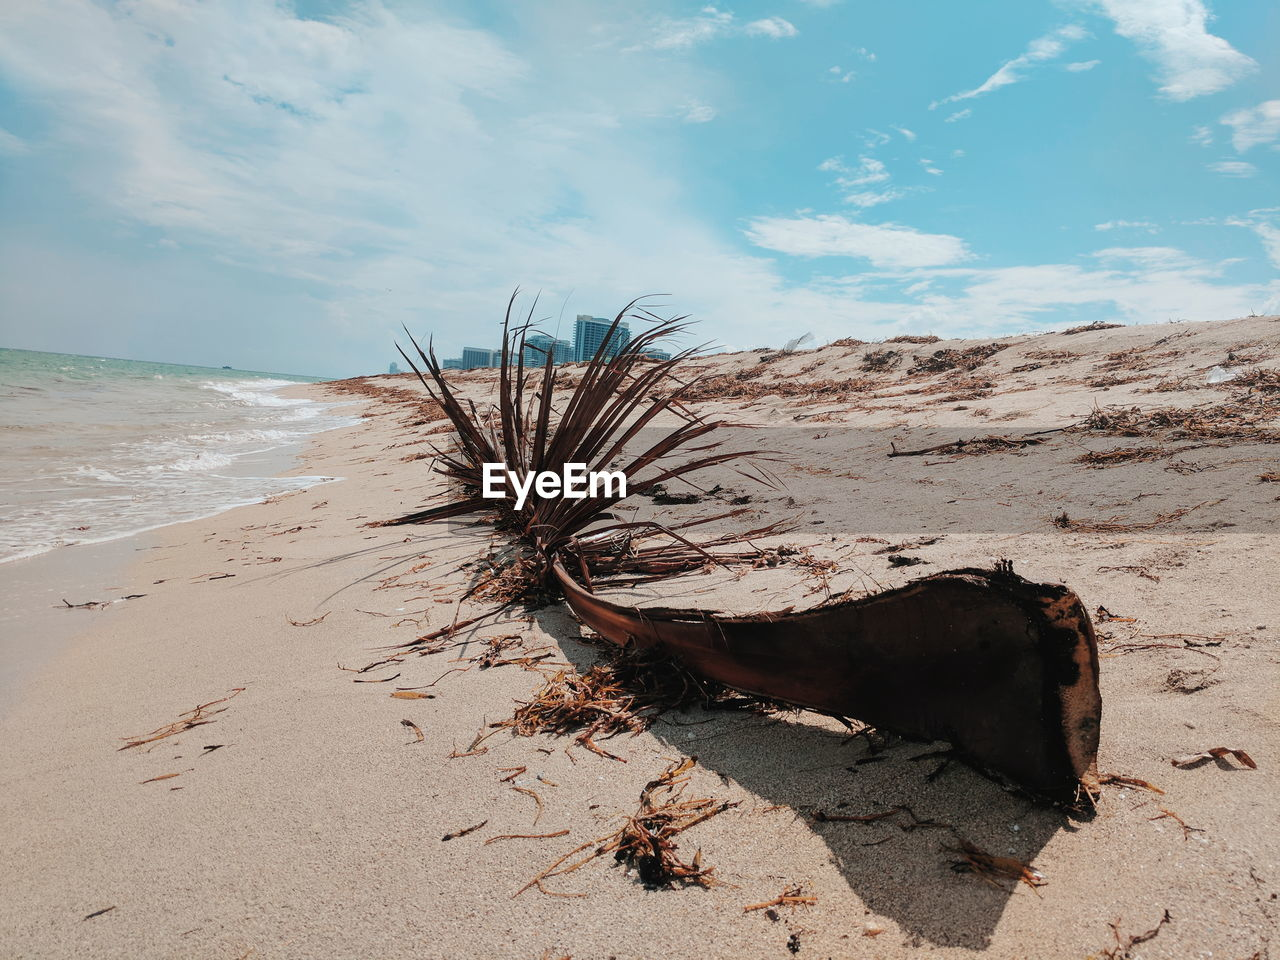 land, beach, sand, sky, nature, sea, water, tranquil scene, scenics - nature, tranquility, day, cloud - sky, no people, beauty in nature, sunlight, outdoors, wood, driftwood, horizon, horizon over water, dead plant, pollution